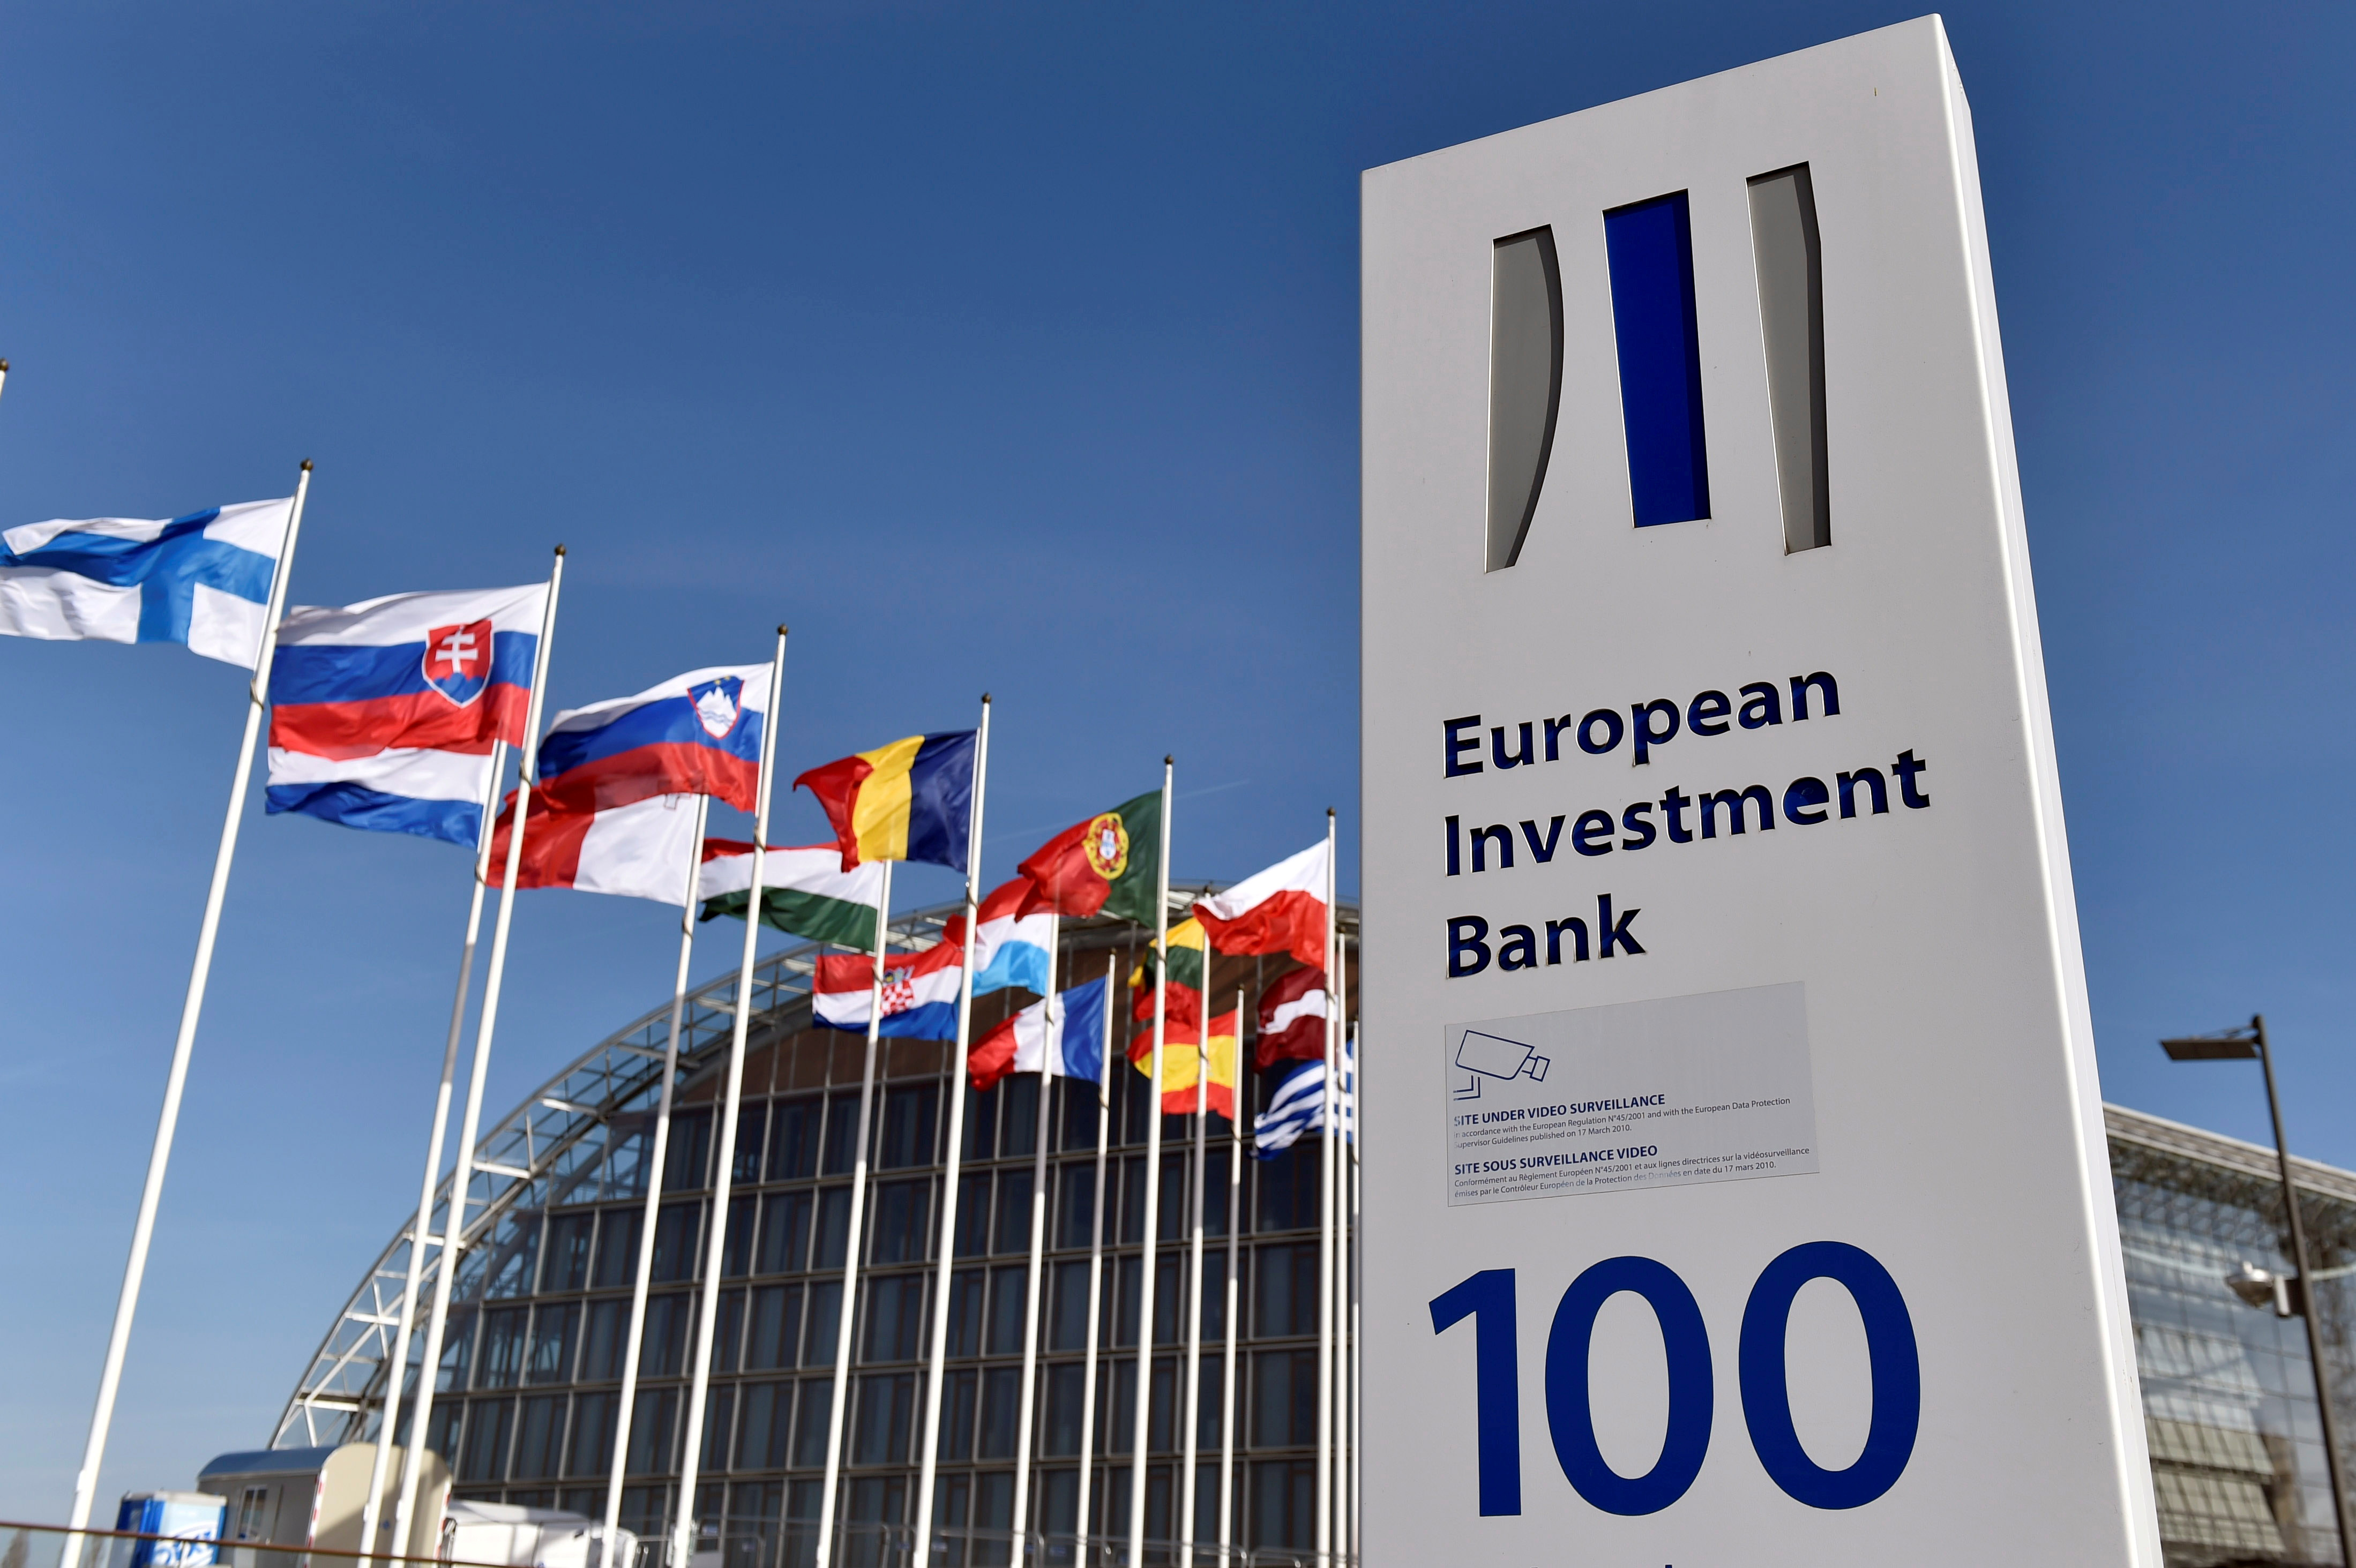 Flags are seen behind the logo of the European Investment Bank pictured in the city of Luxembourg, Luxembourg, March 25, 2017. Reuters/Eric Vidal/File Photo